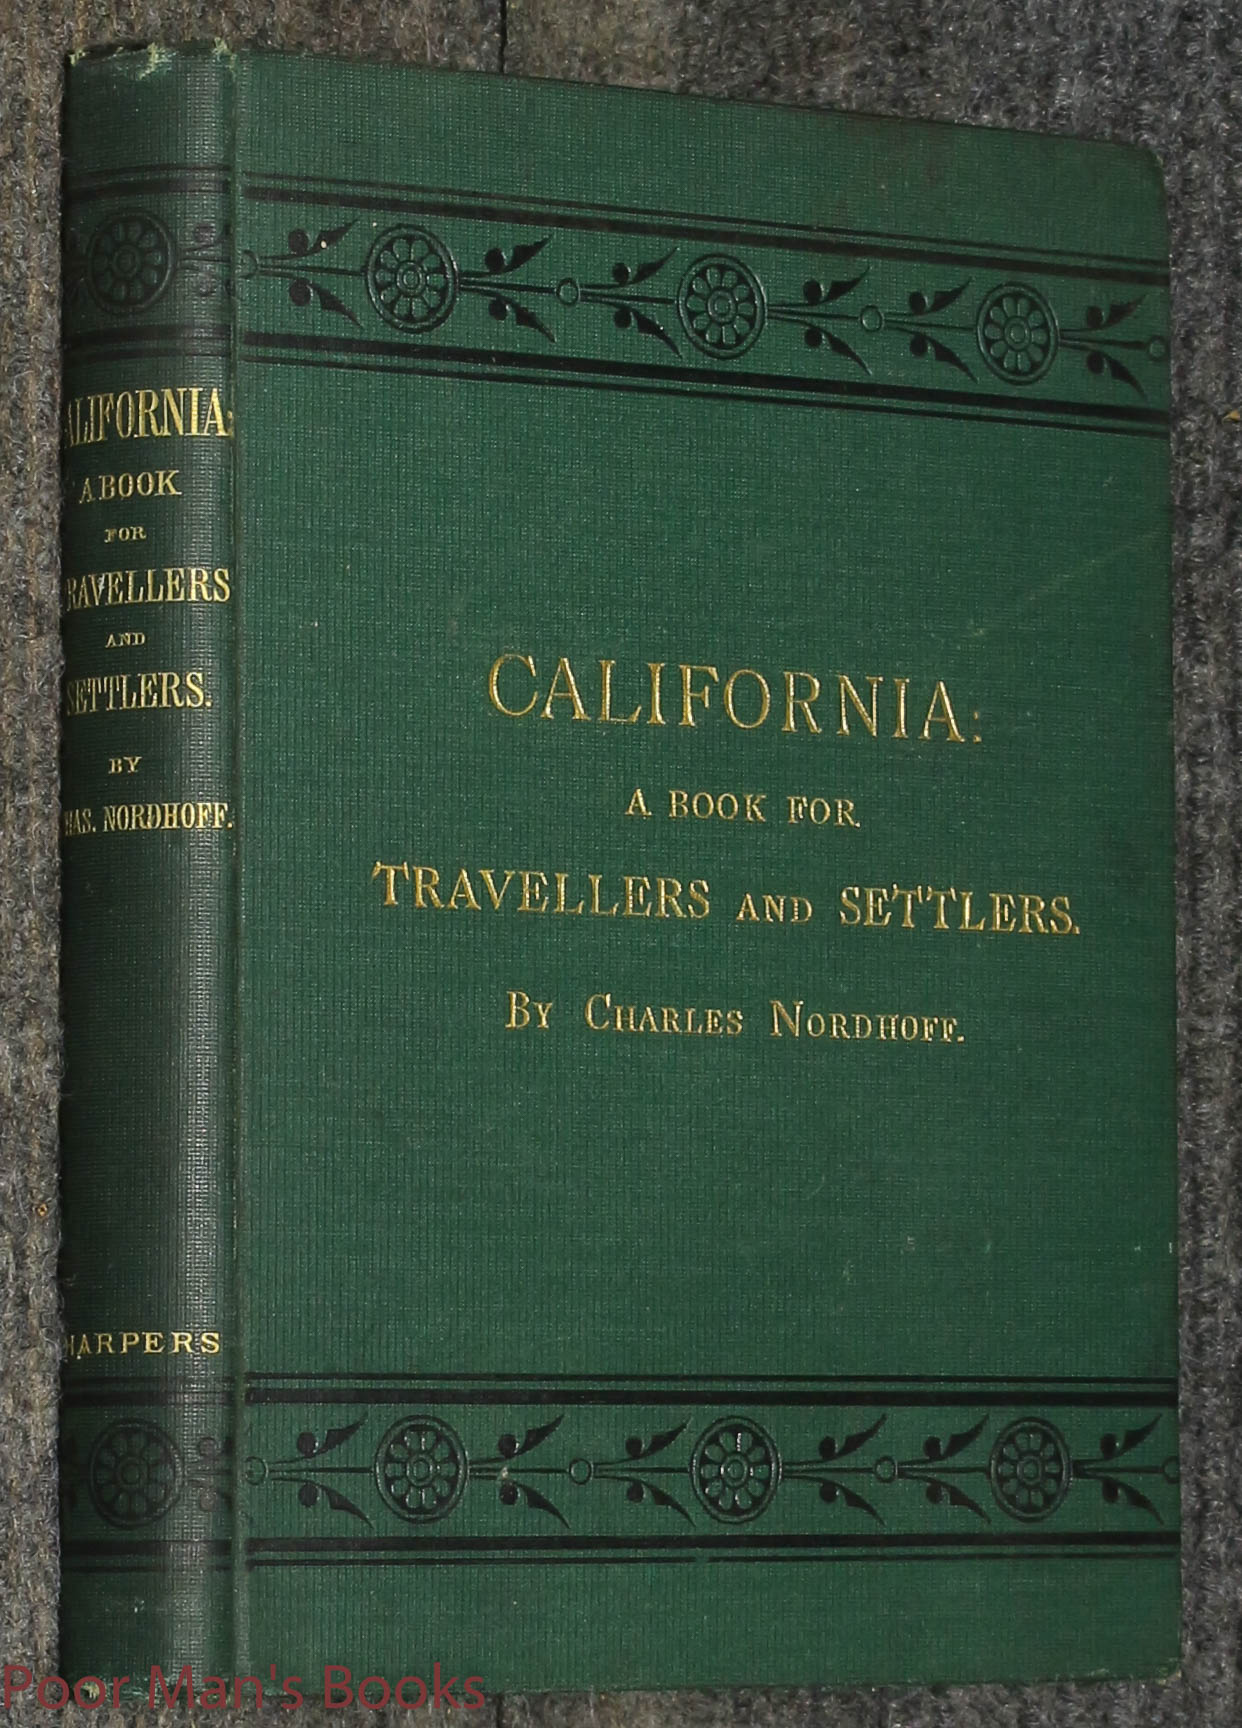 Image for California: For Health, Pleasure, And Residence. A Book For Travellers And Settlers,1st/1st 1874